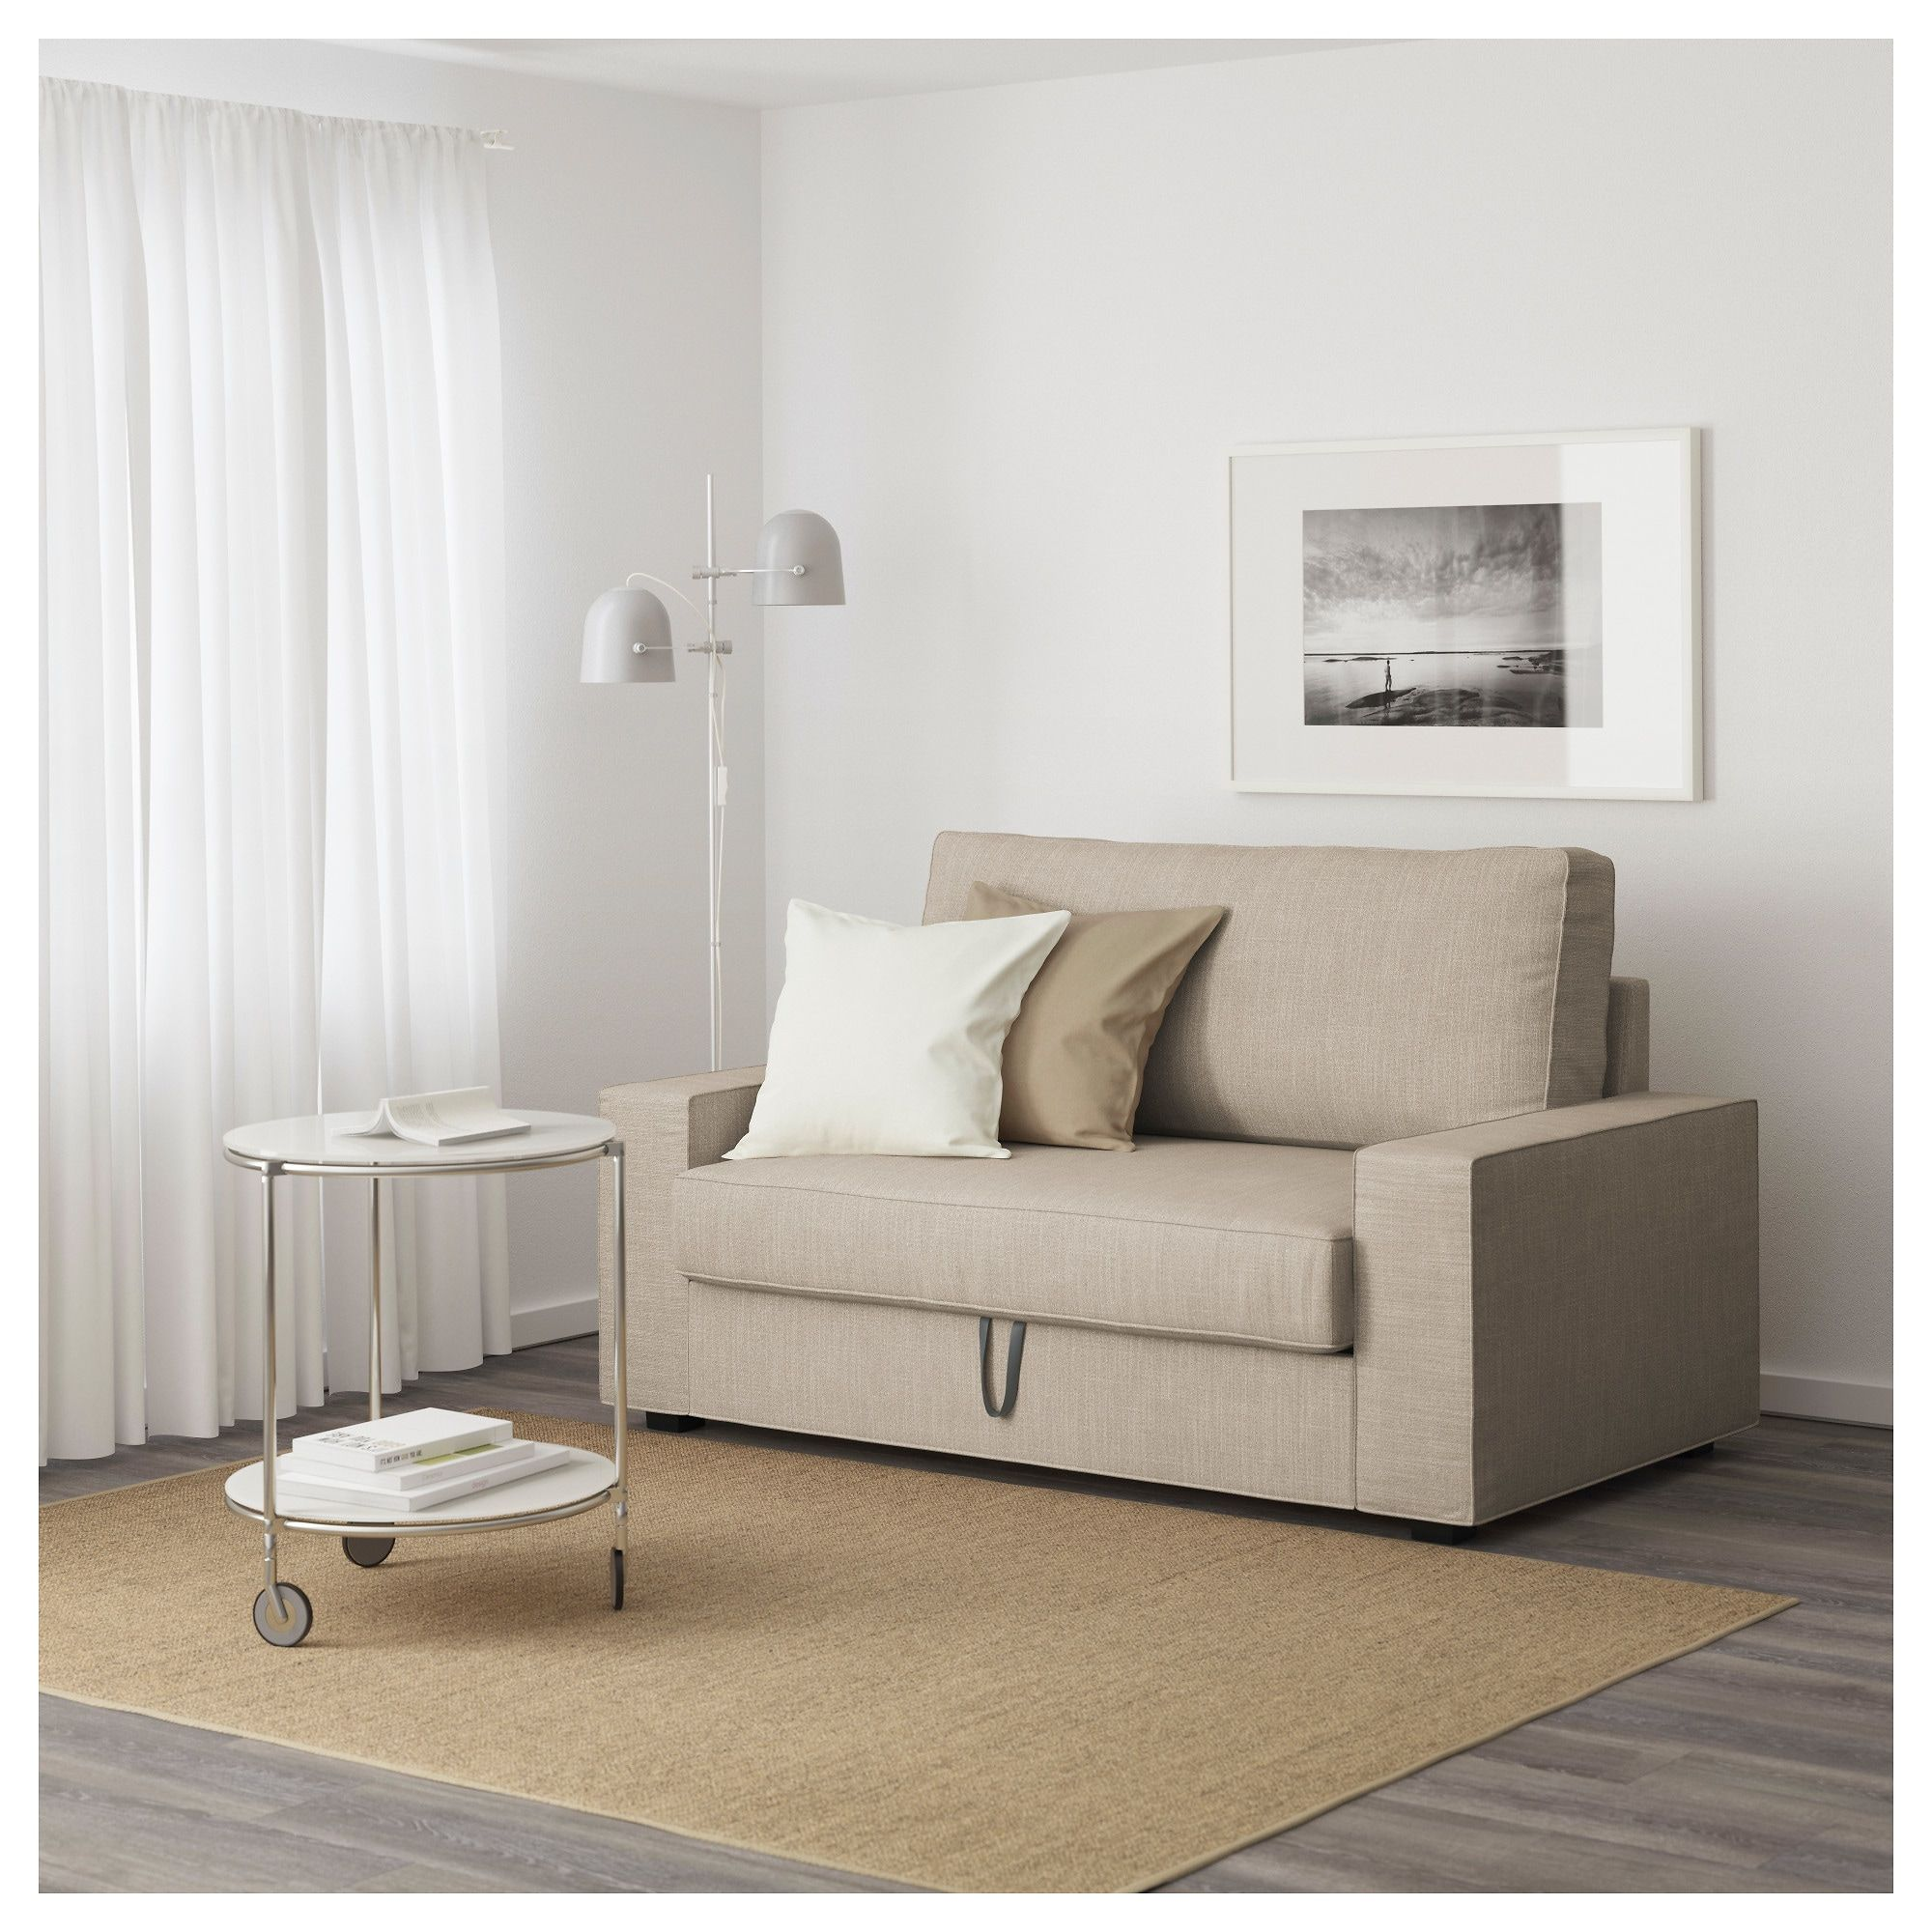 Bettsofa Vilasund Vilasund 2er Bettsofa Hillared Beige In 2019 Products Chair